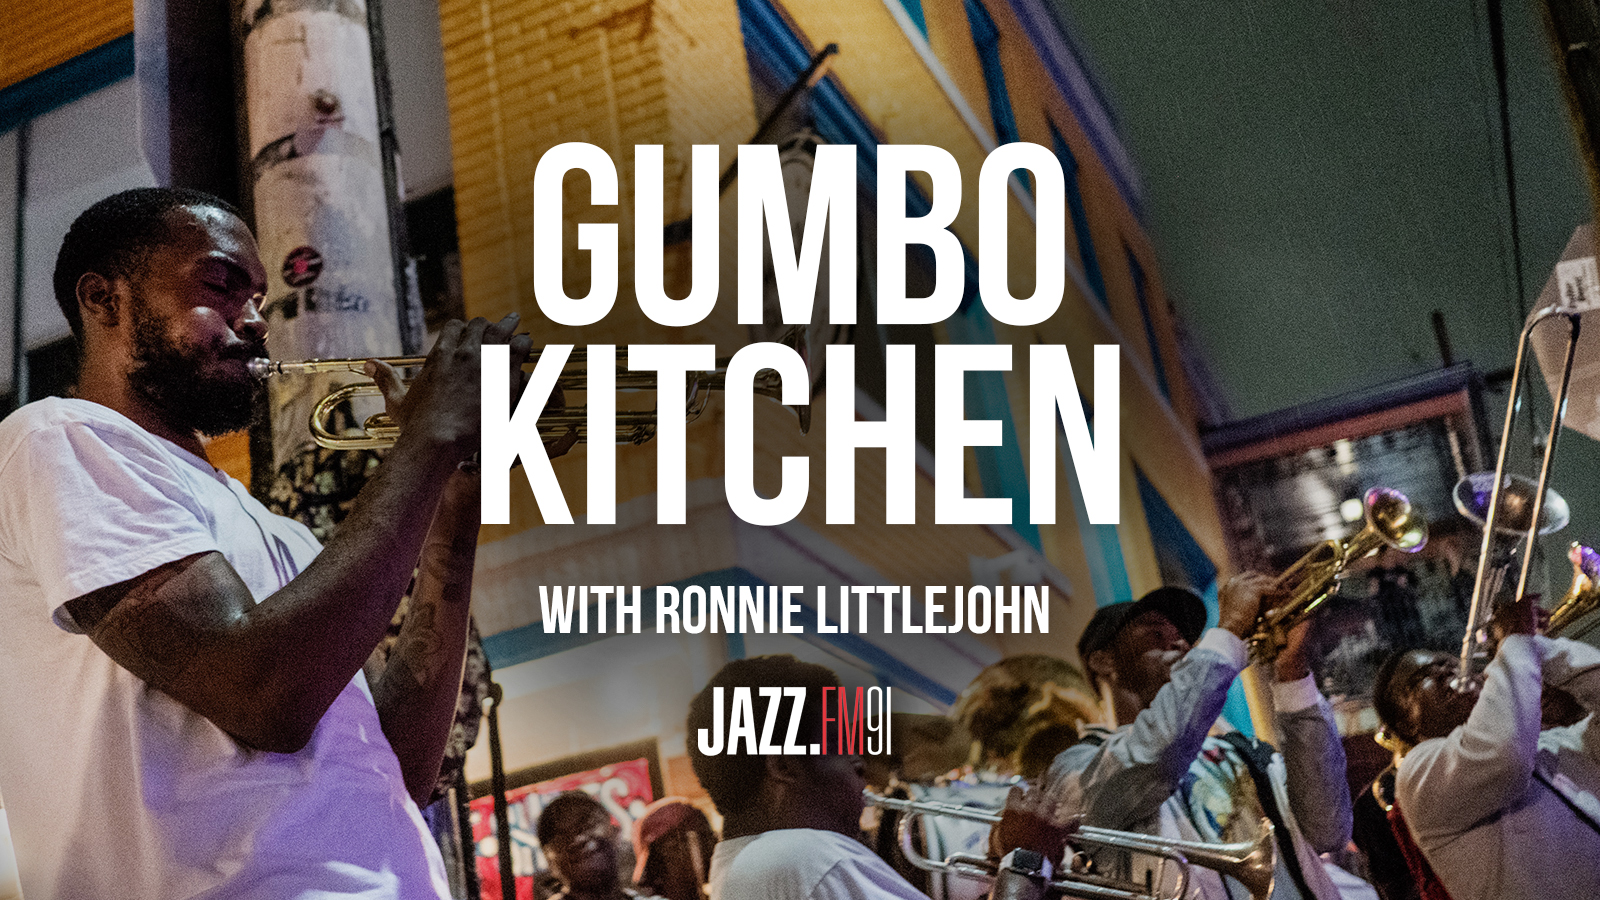 https://jazz.fm/app/uploads/gumbo-kitchen-jazzfm91.jpg